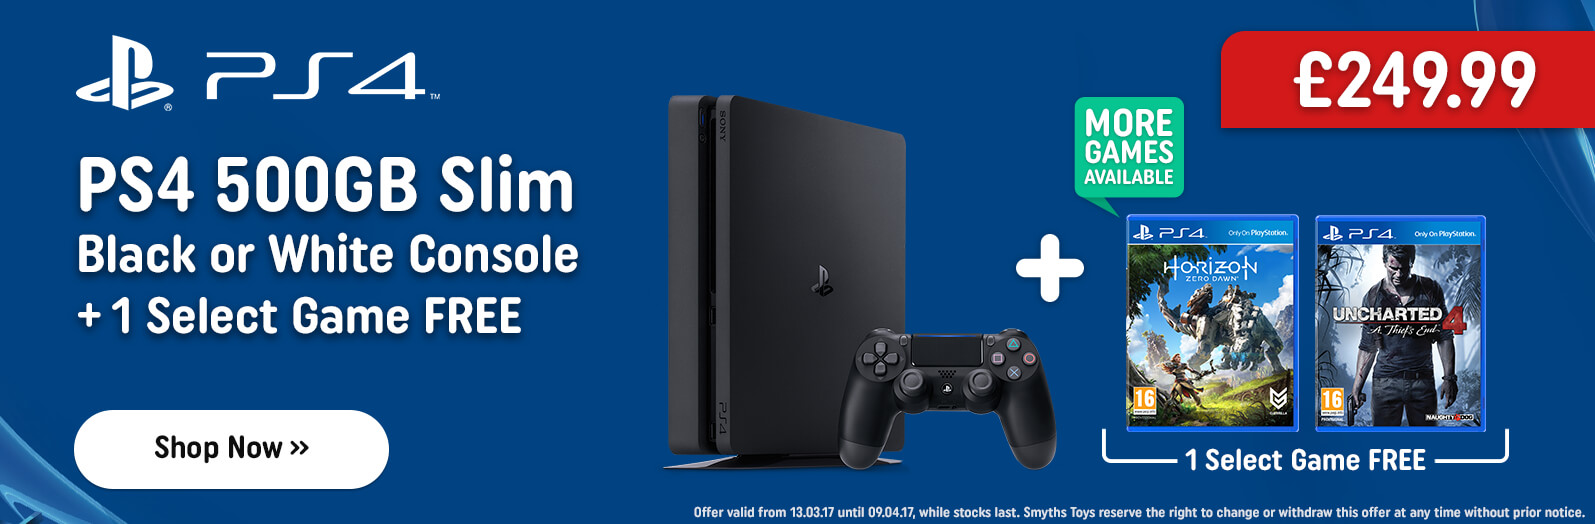 PS4 500GB Slim Console with one Select Game